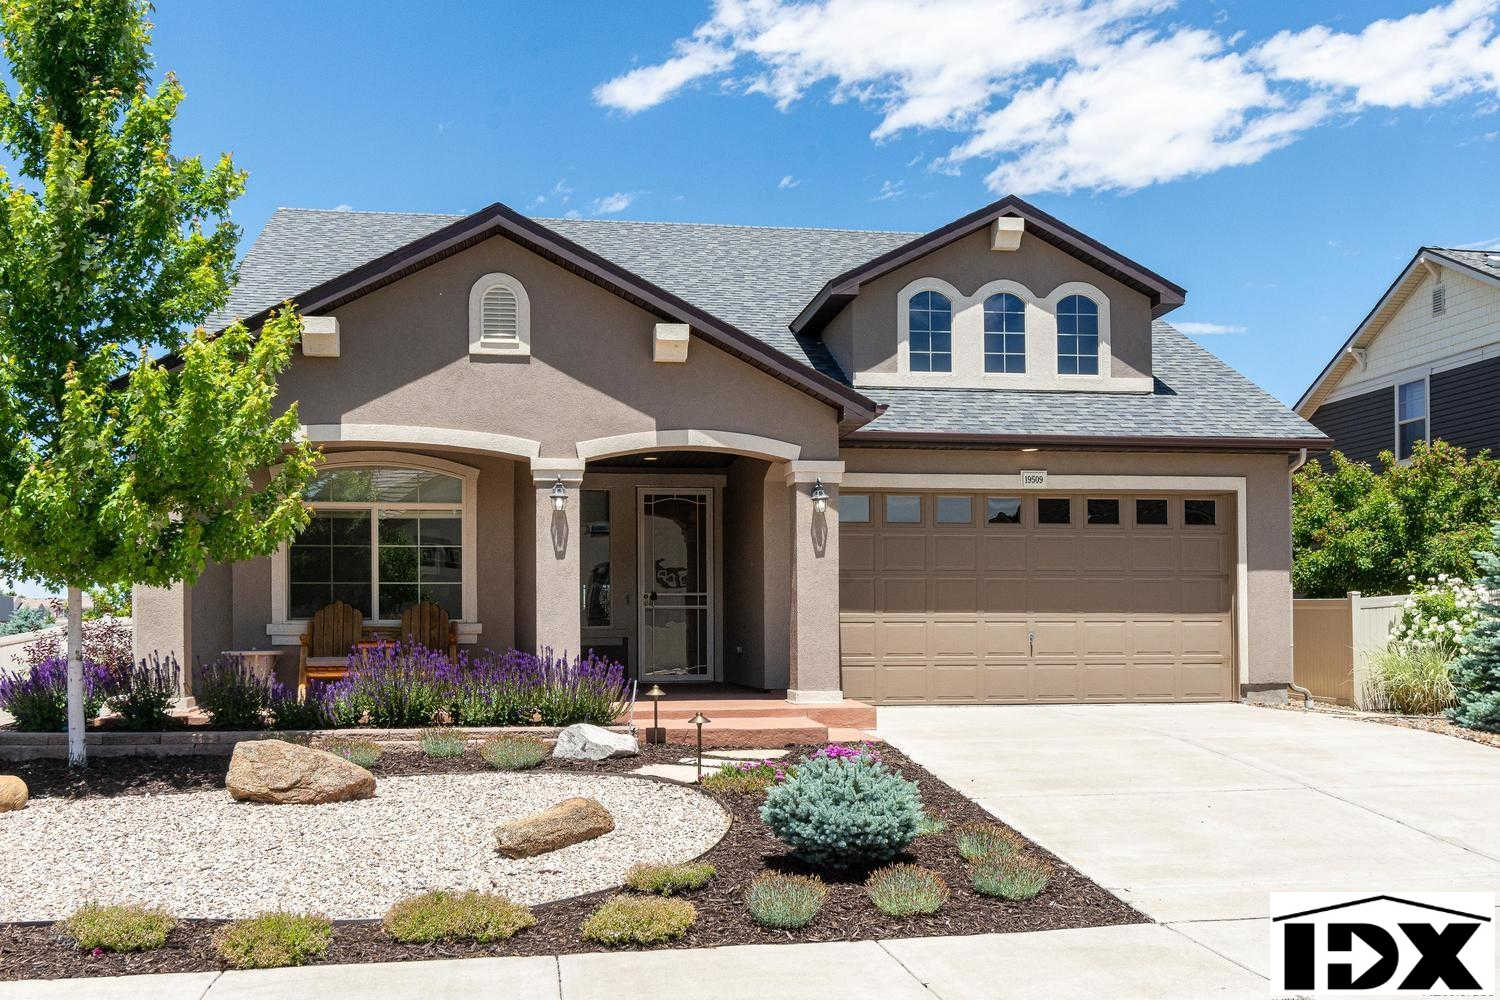 19509 East 55th Avenue, Denver, CO 80249 now has a new price of $449,500!